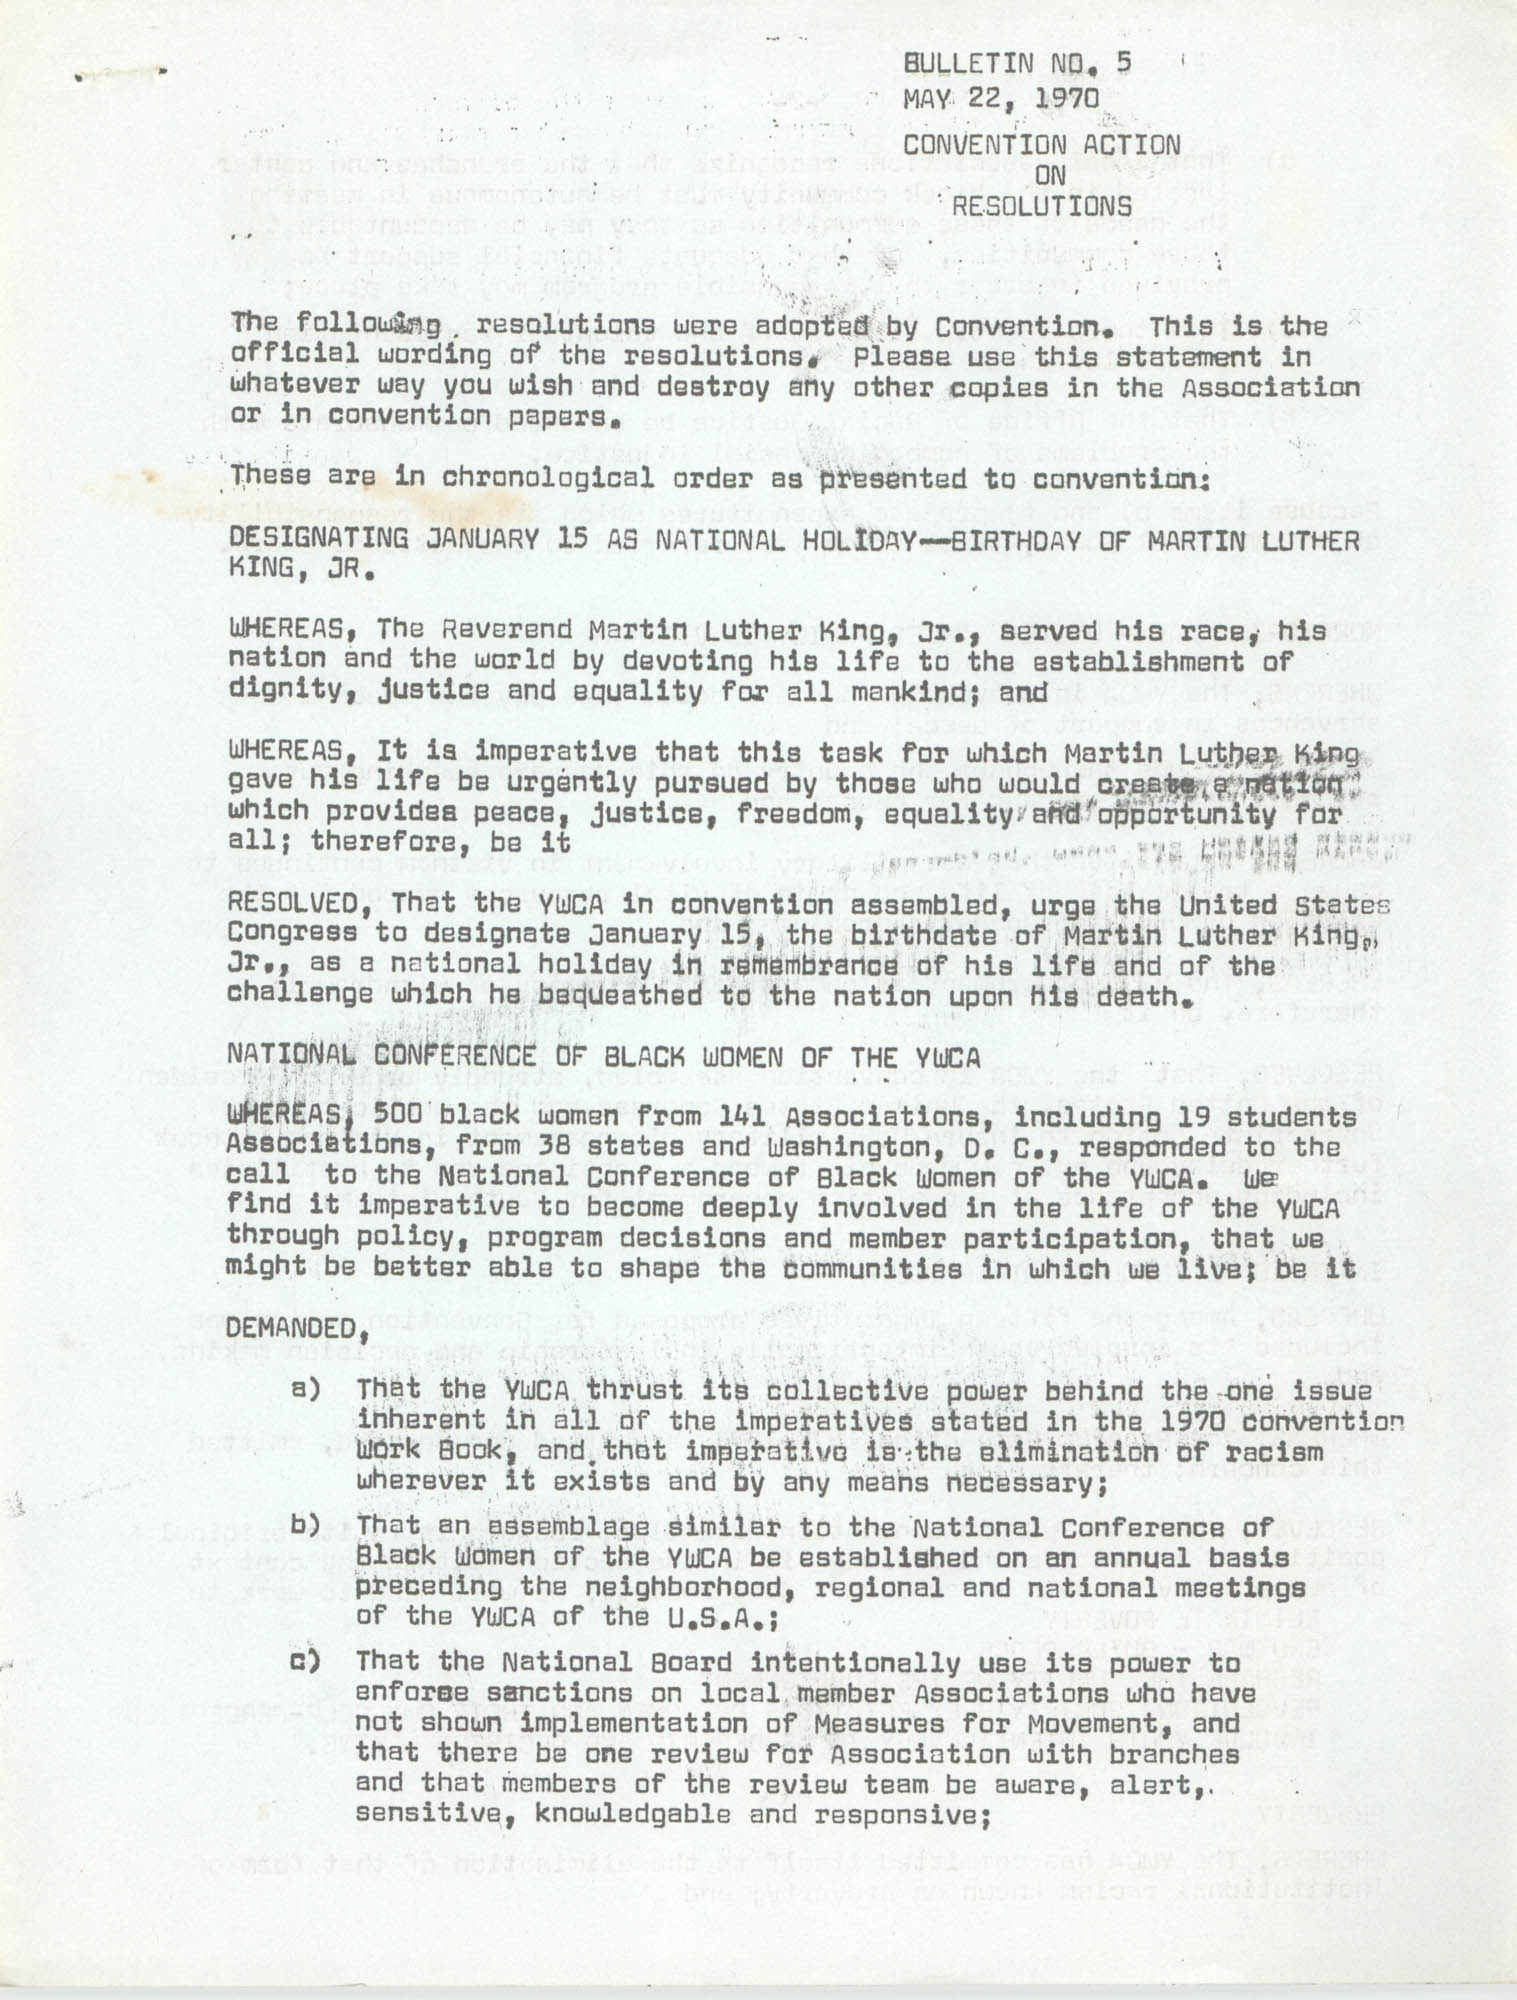 Bulletin No. 5, Convention Action on Resolutions, May 22, 1970, Page 1